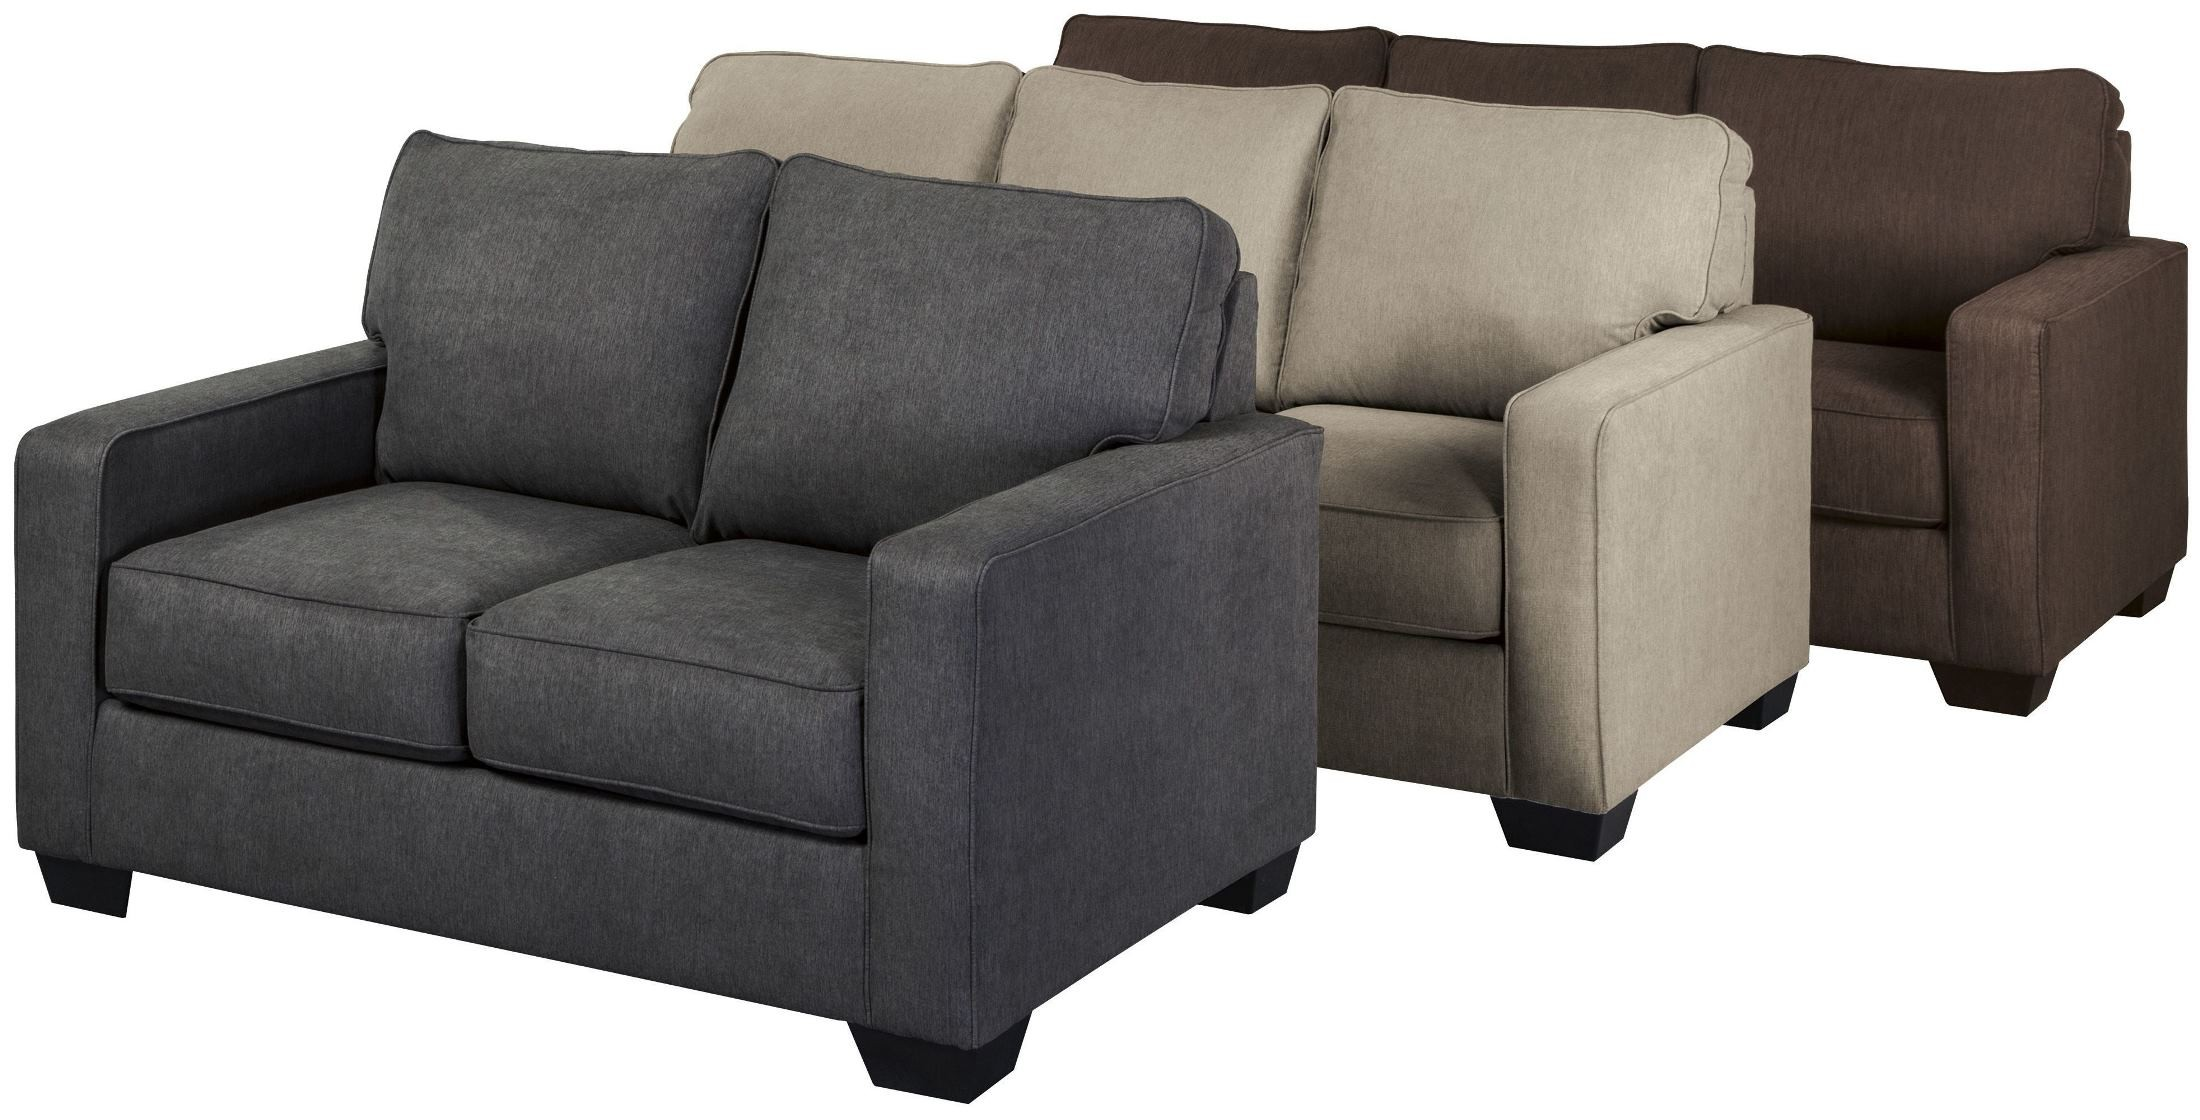 Zeb Quartz Full Sofa Sleeper 3590236 Ashley